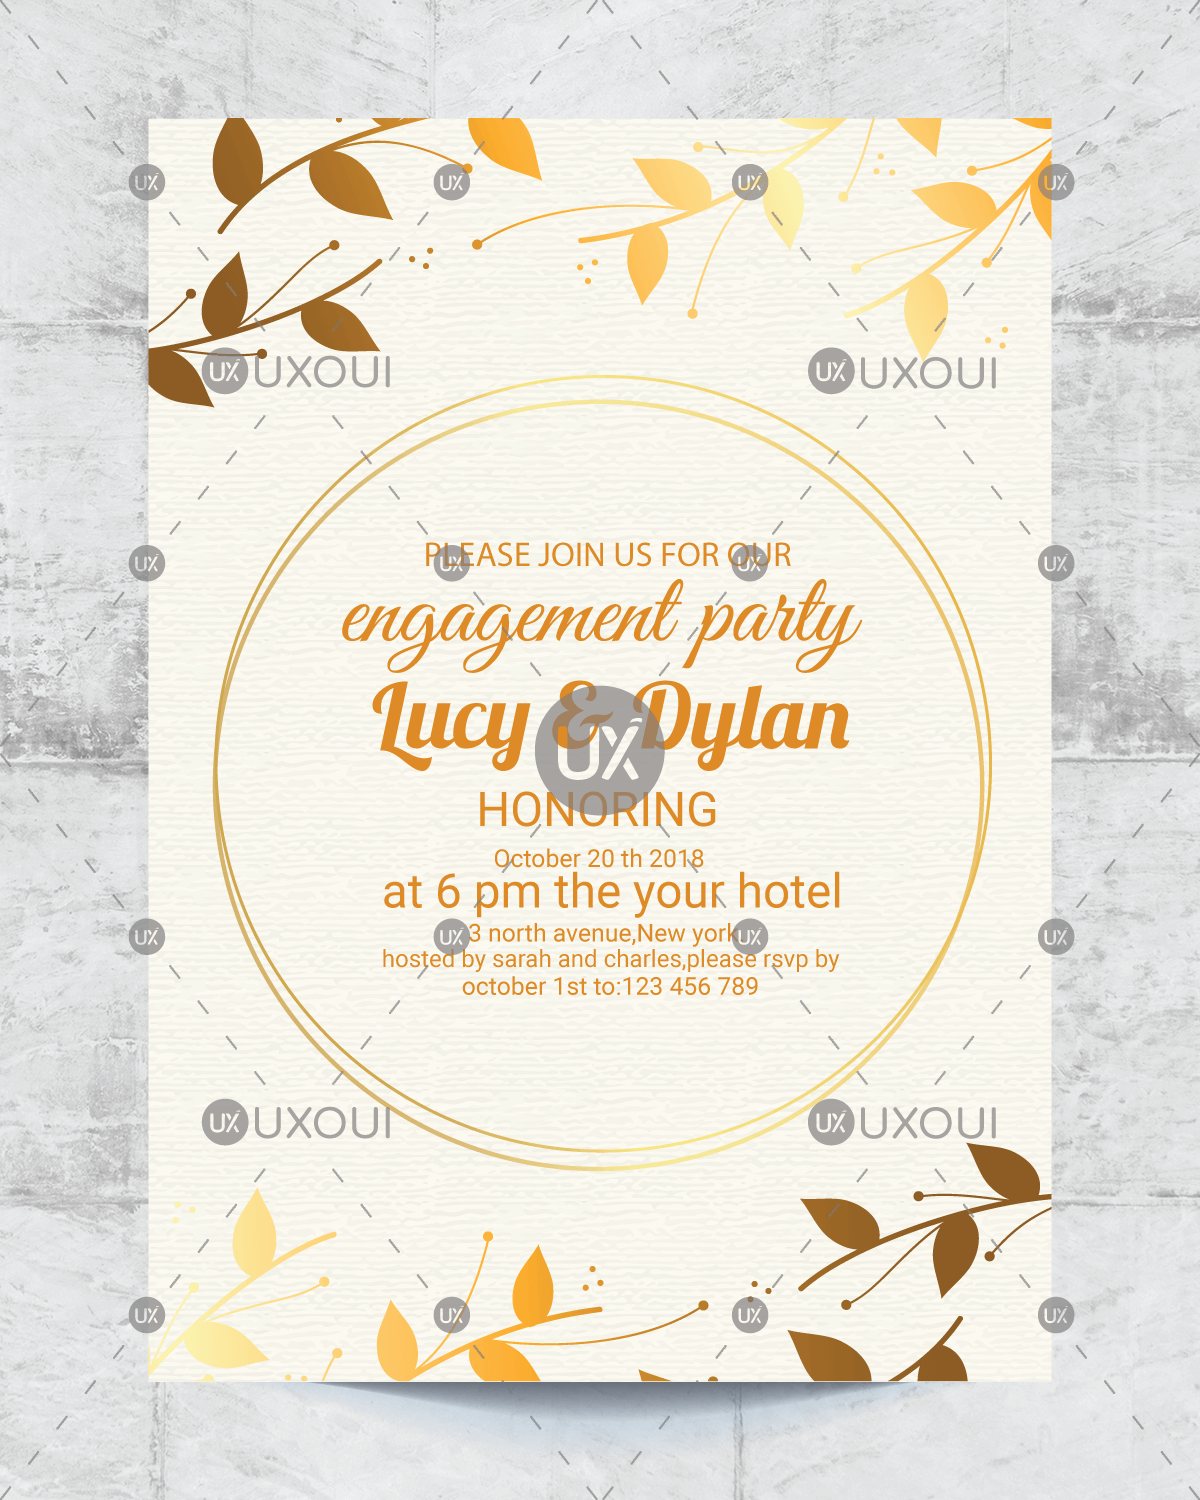 Floral wedding engagement party invitation card design template vector |  UXoUI